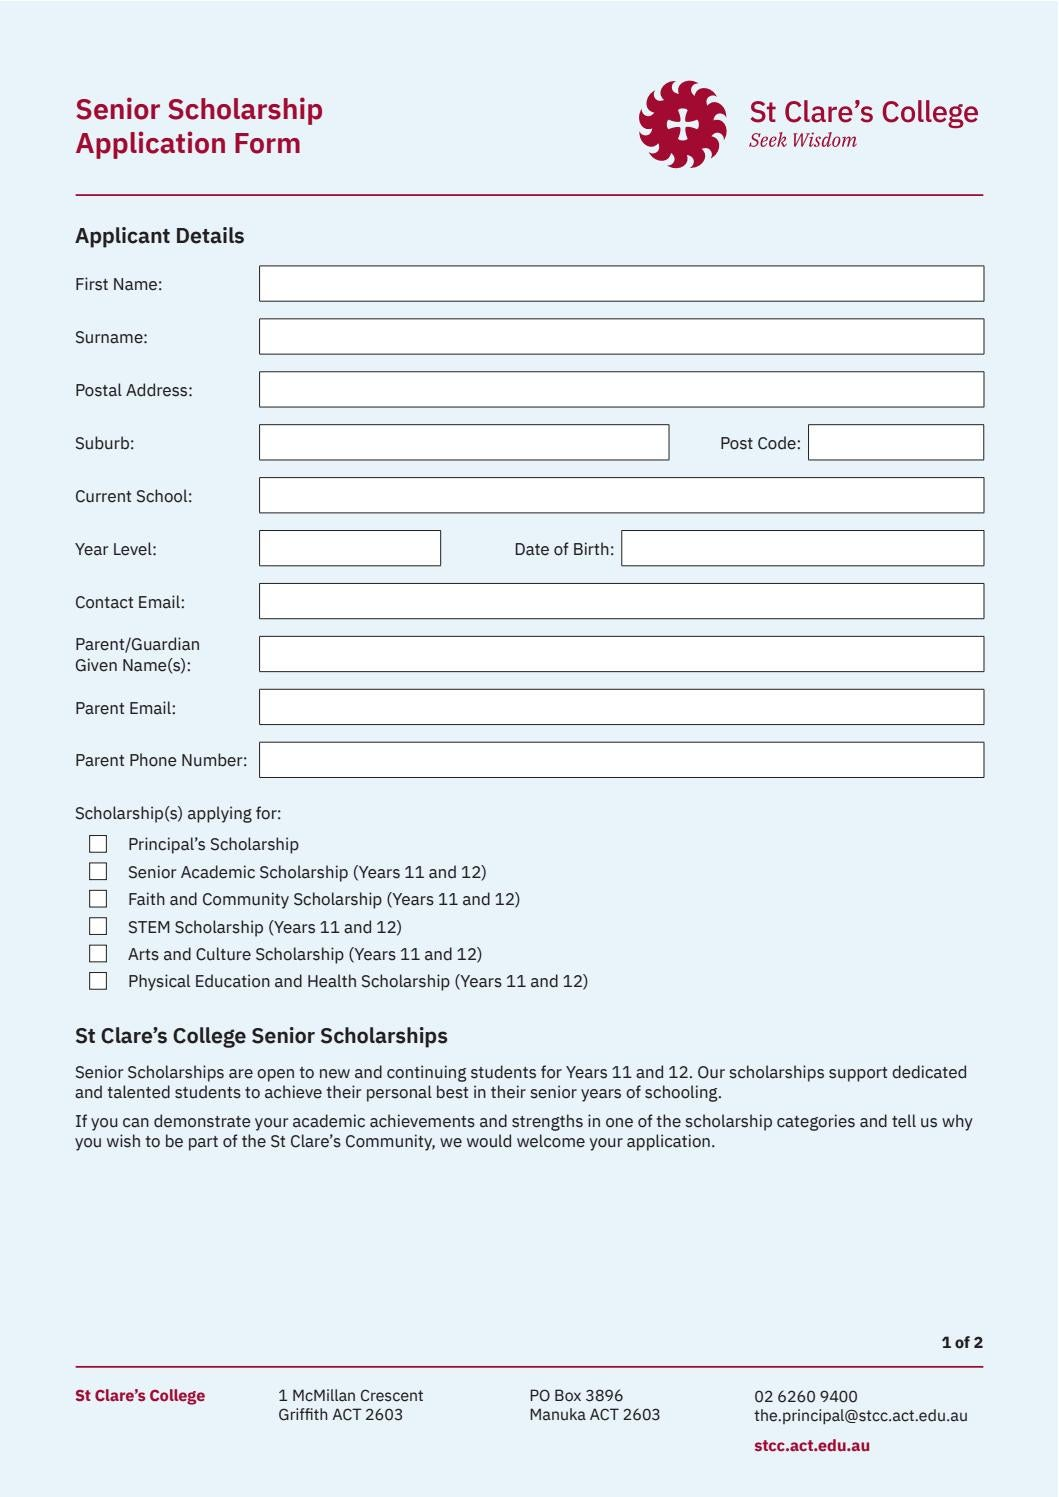 Senior Scholarship Application Form